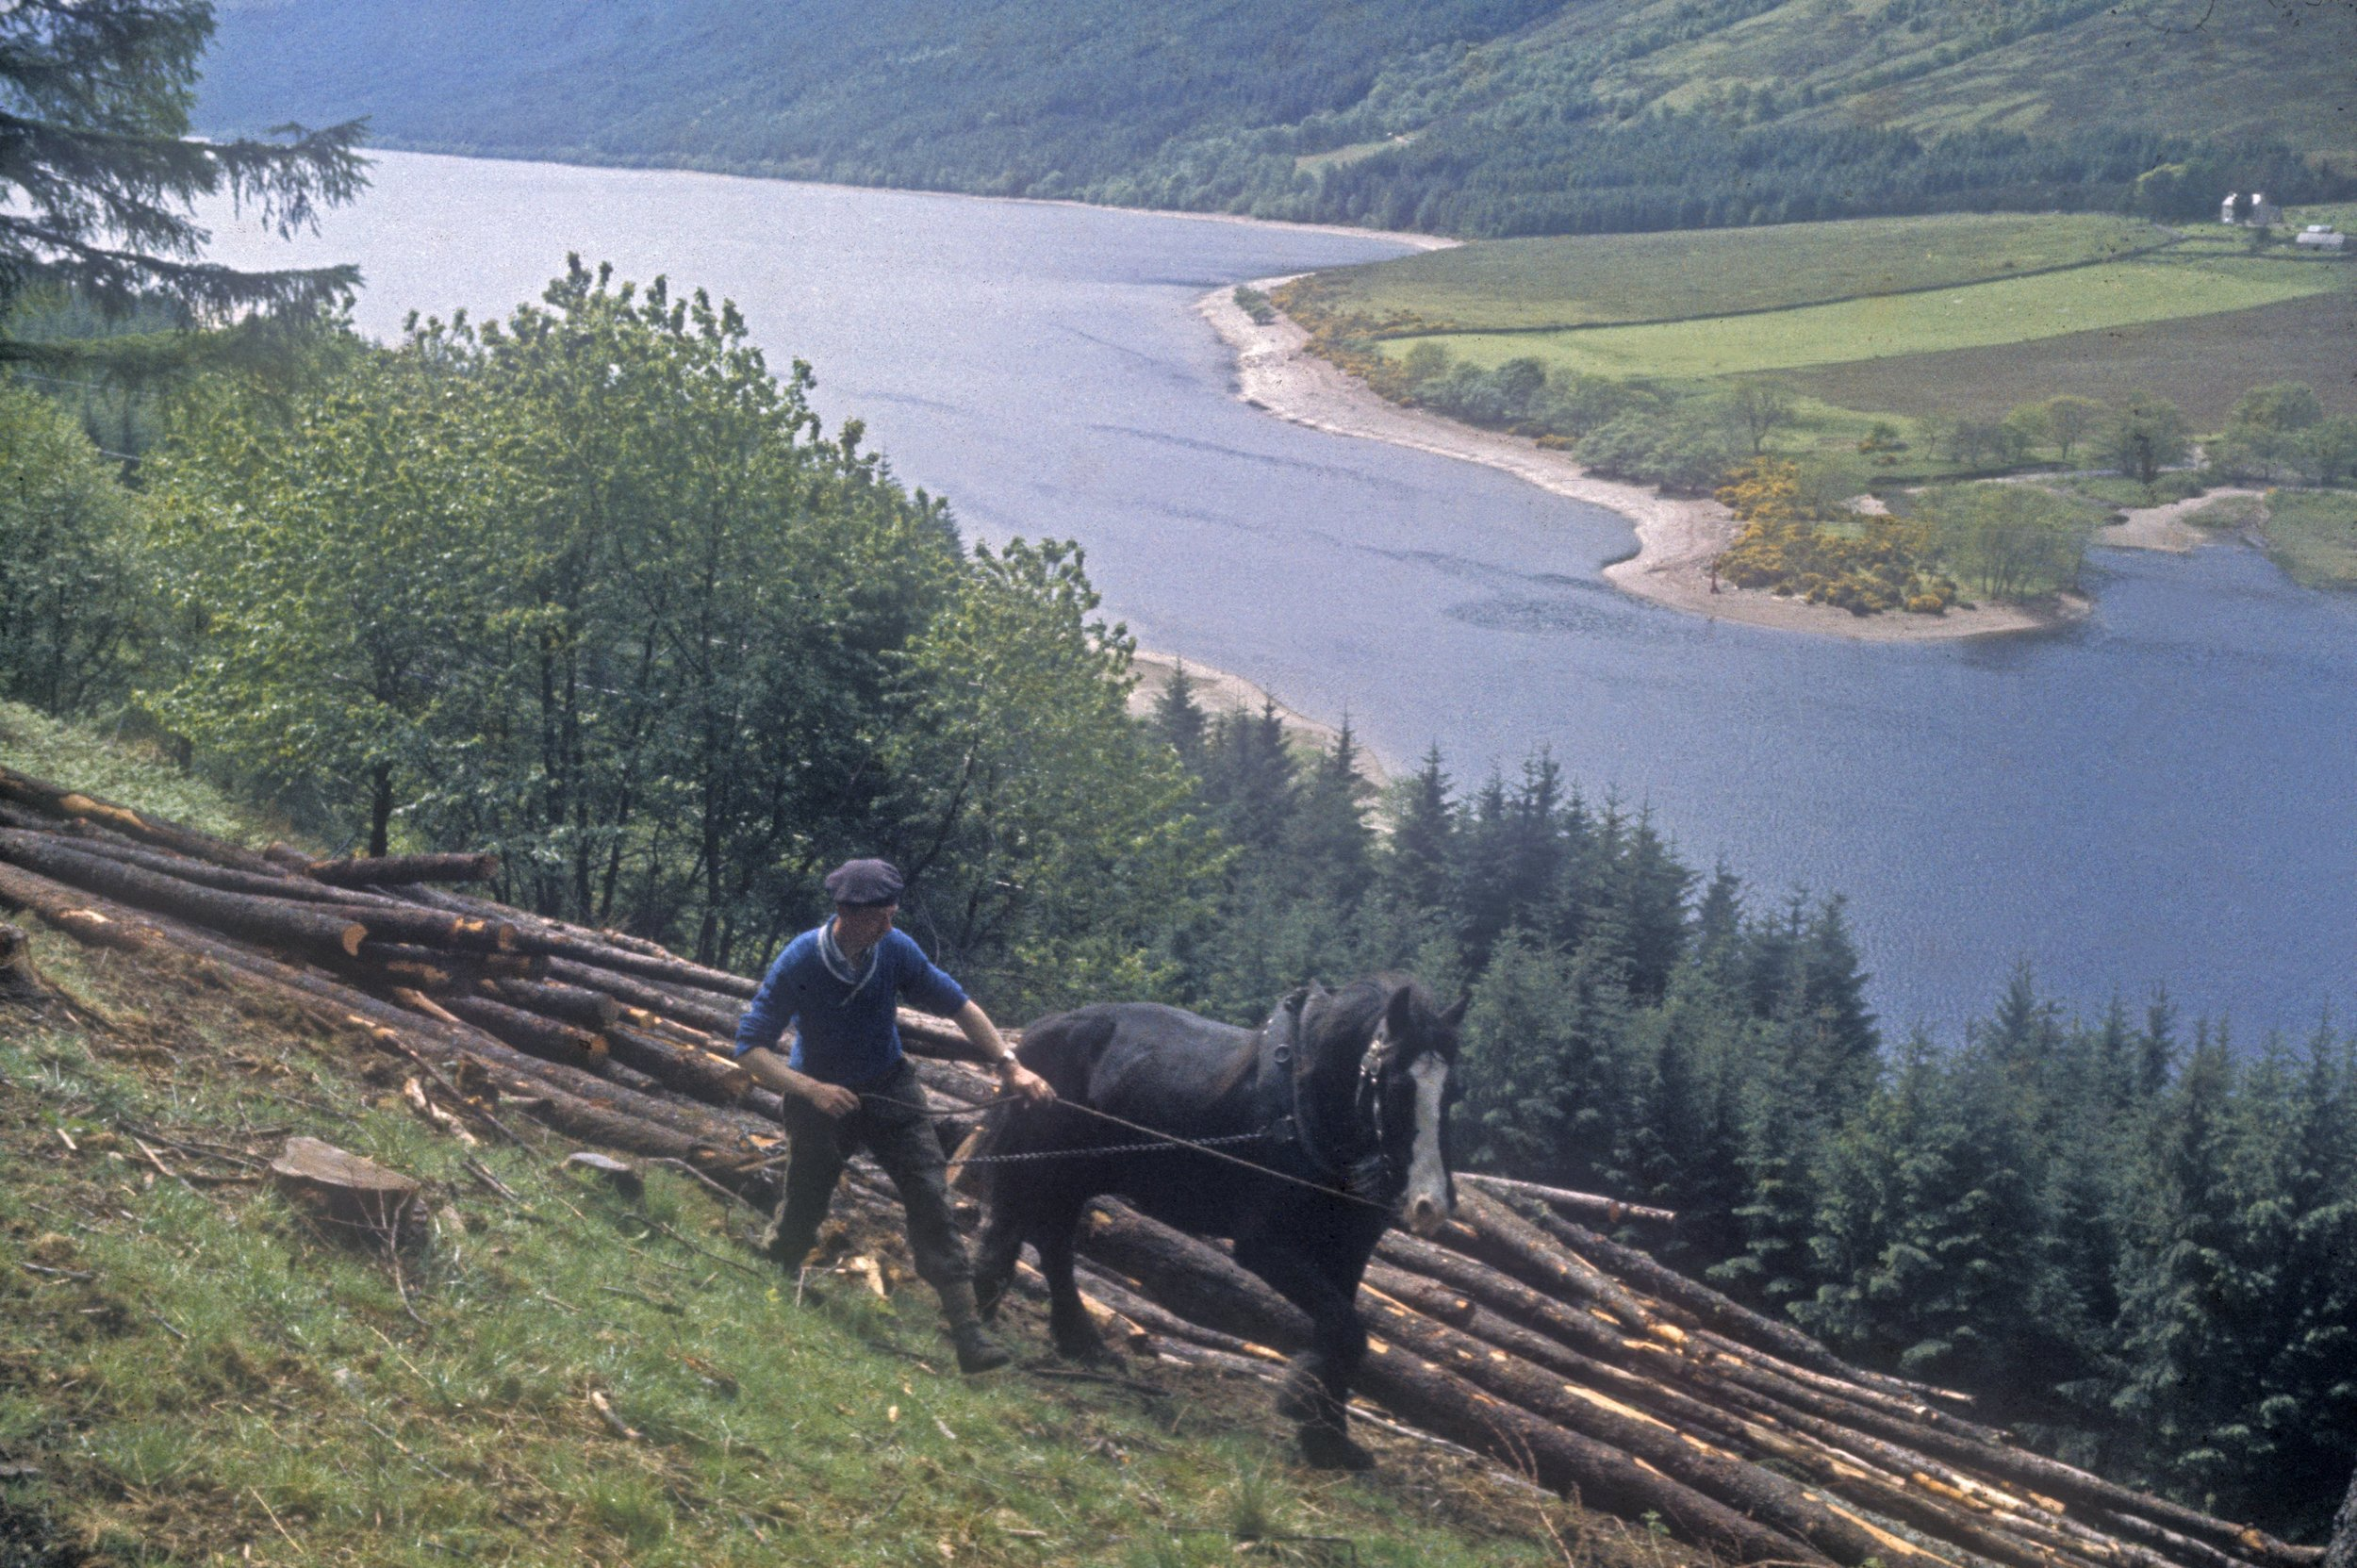 Collecting timber with horses, 1968